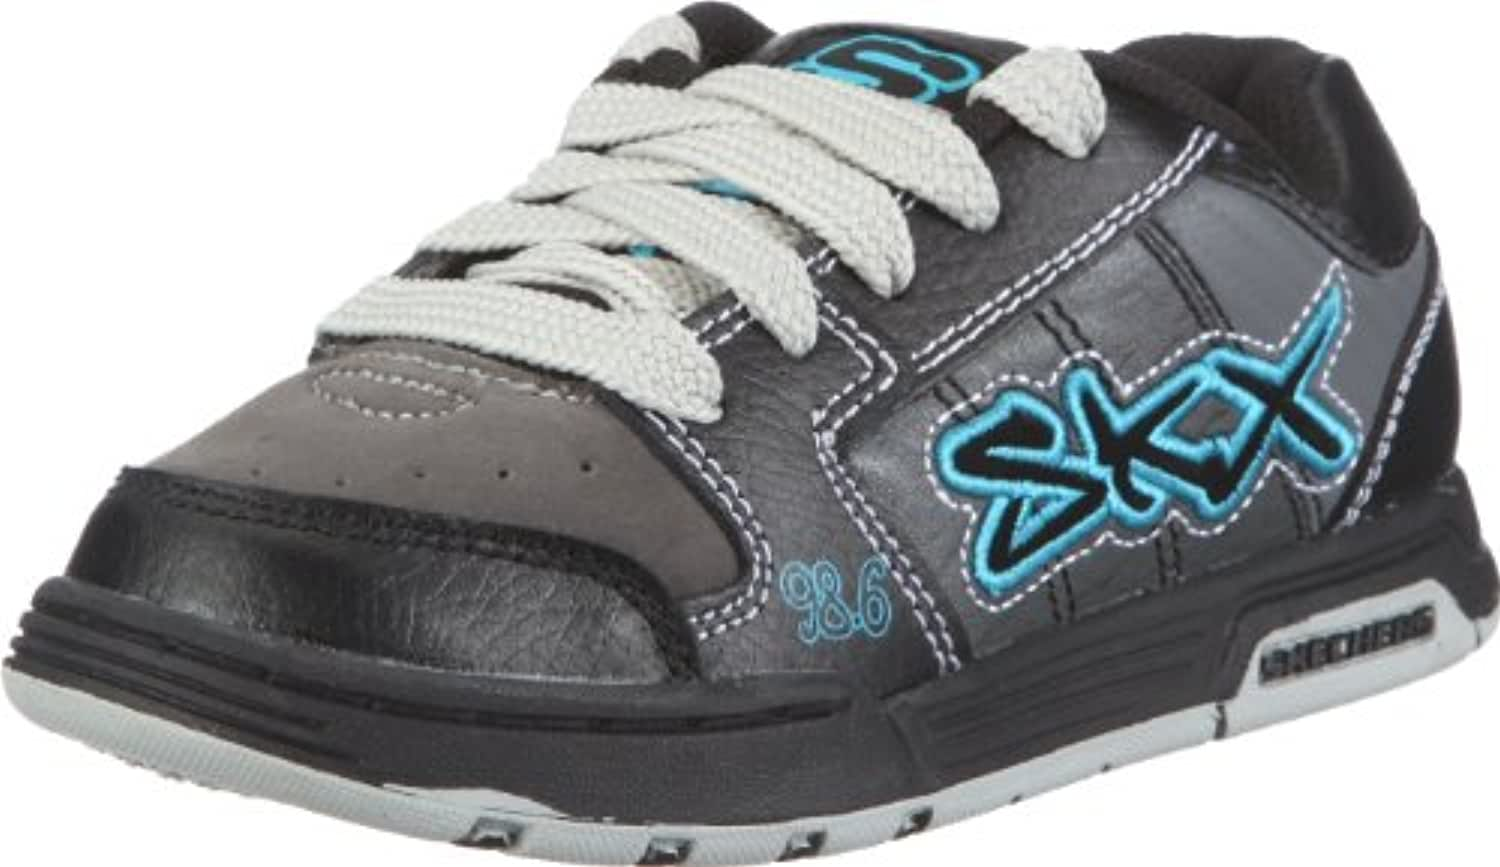 Skechers Boys' Endorse Stream Low-Top Sneakers Black Size: 12 Child UK